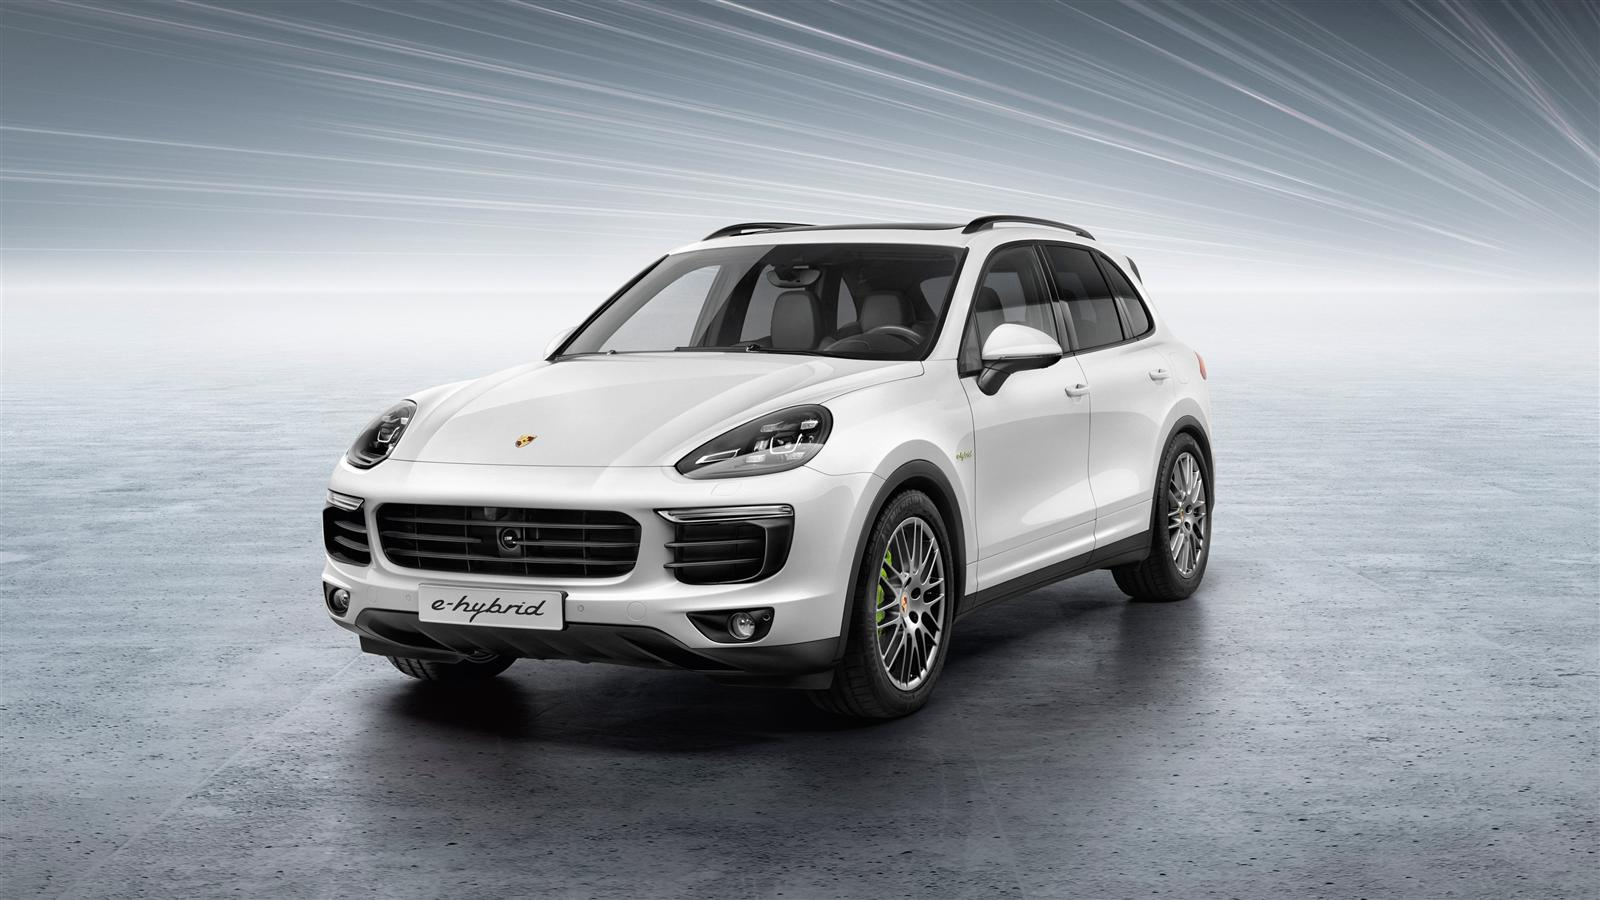 porsche cayenne s e hybrid voiture hybride essais prix caract ristiques. Black Bedroom Furniture Sets. Home Design Ideas